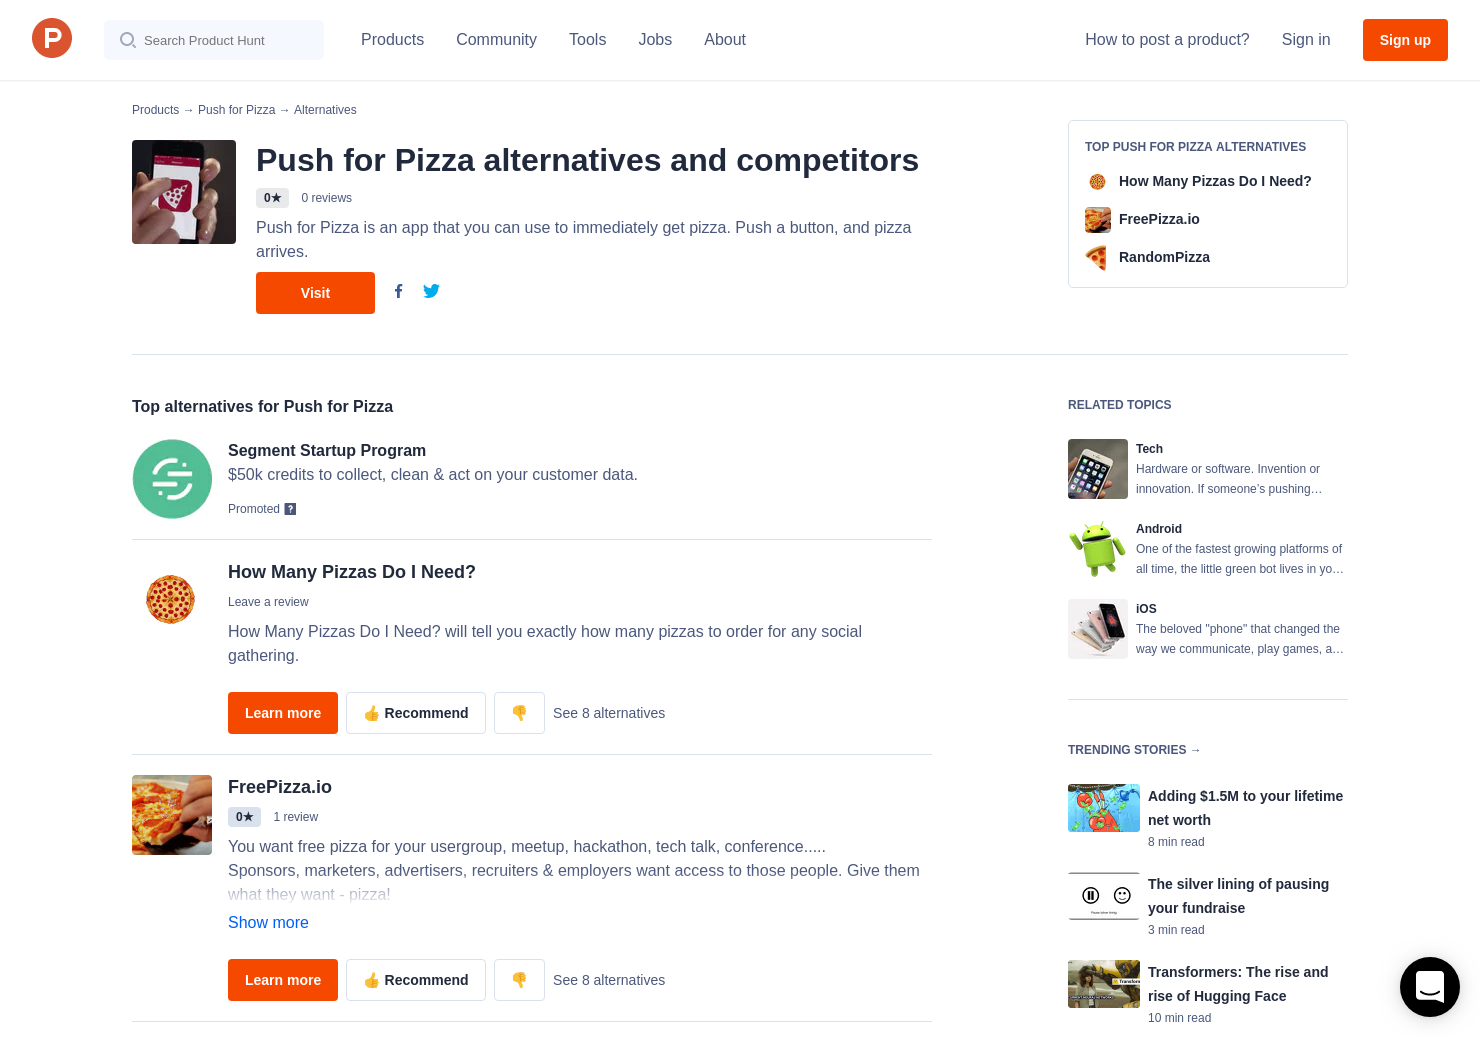 13 Alternatives to Push for Pizza for Android, iPhone | Product Hunt